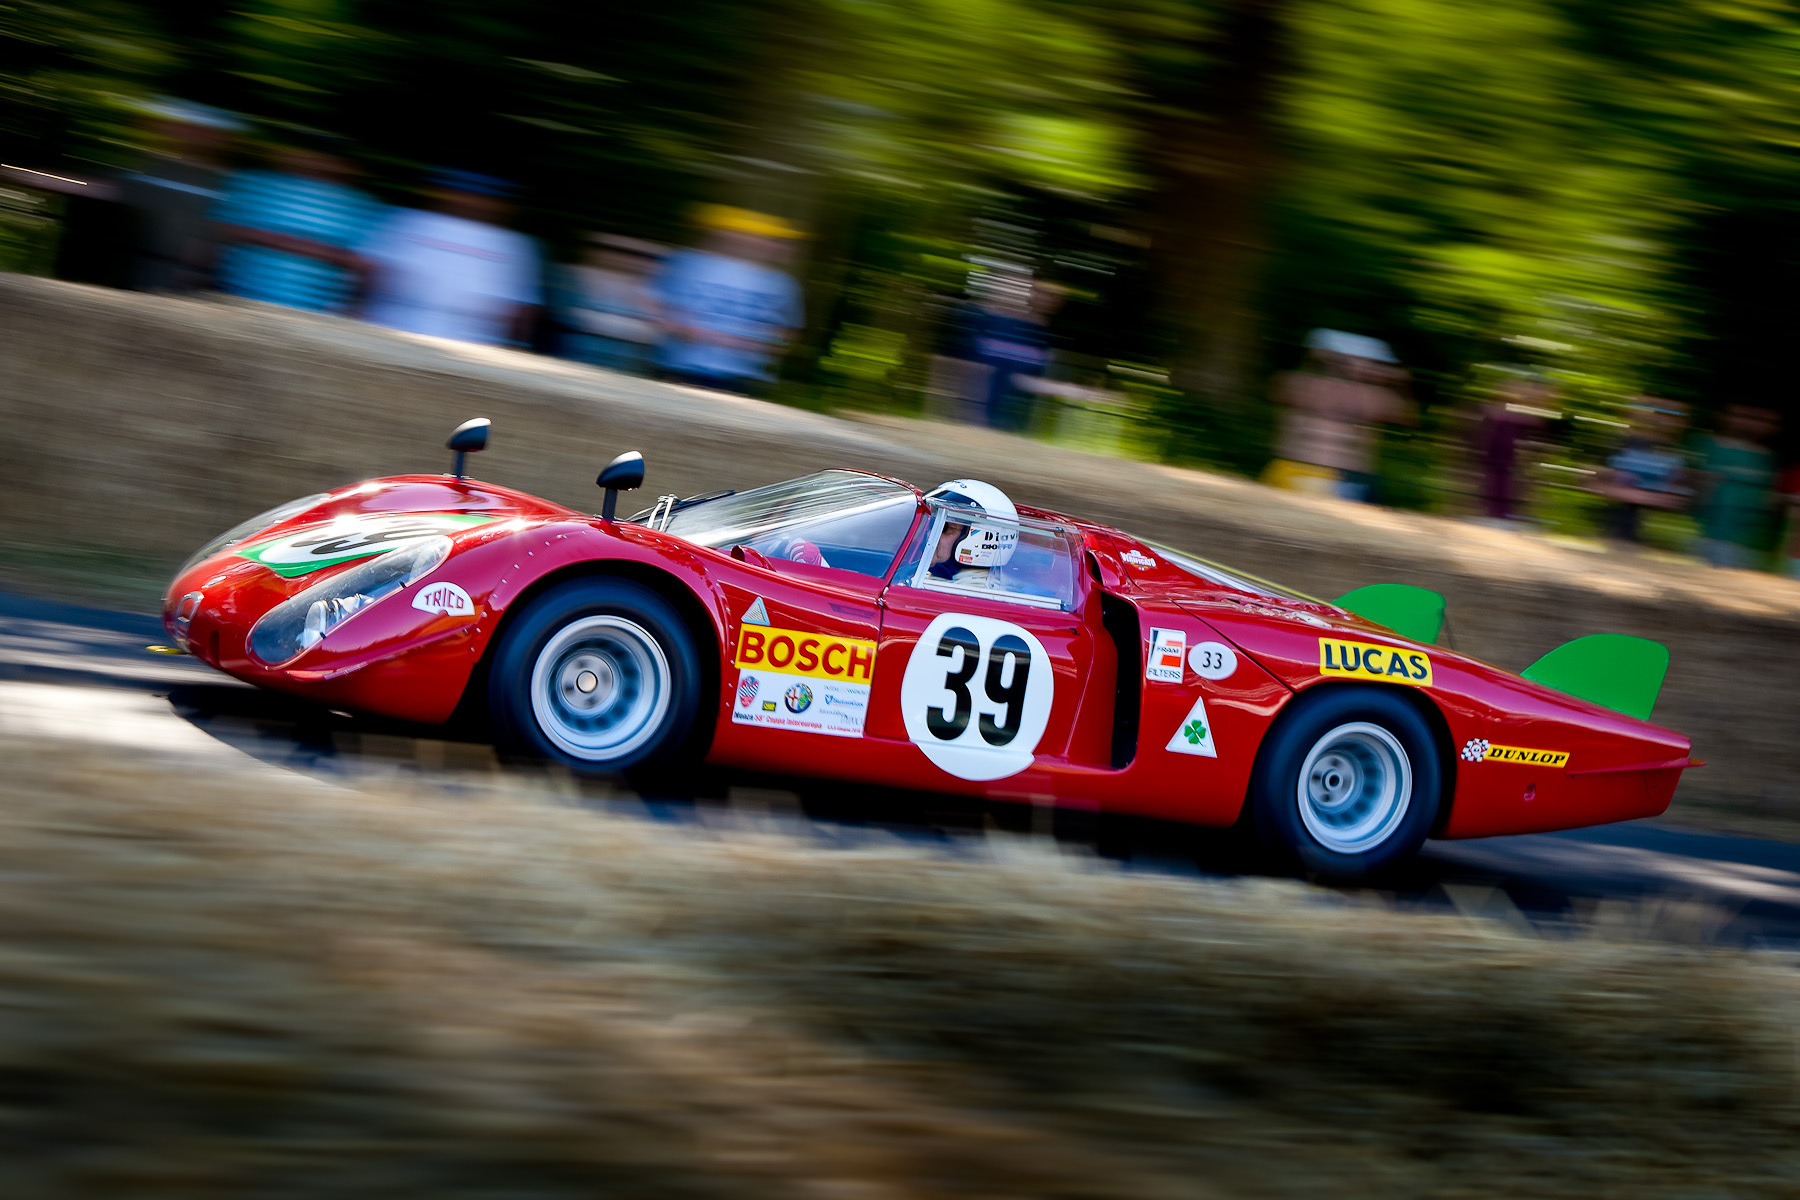 44_0_481_1goodwood_8342.jpg